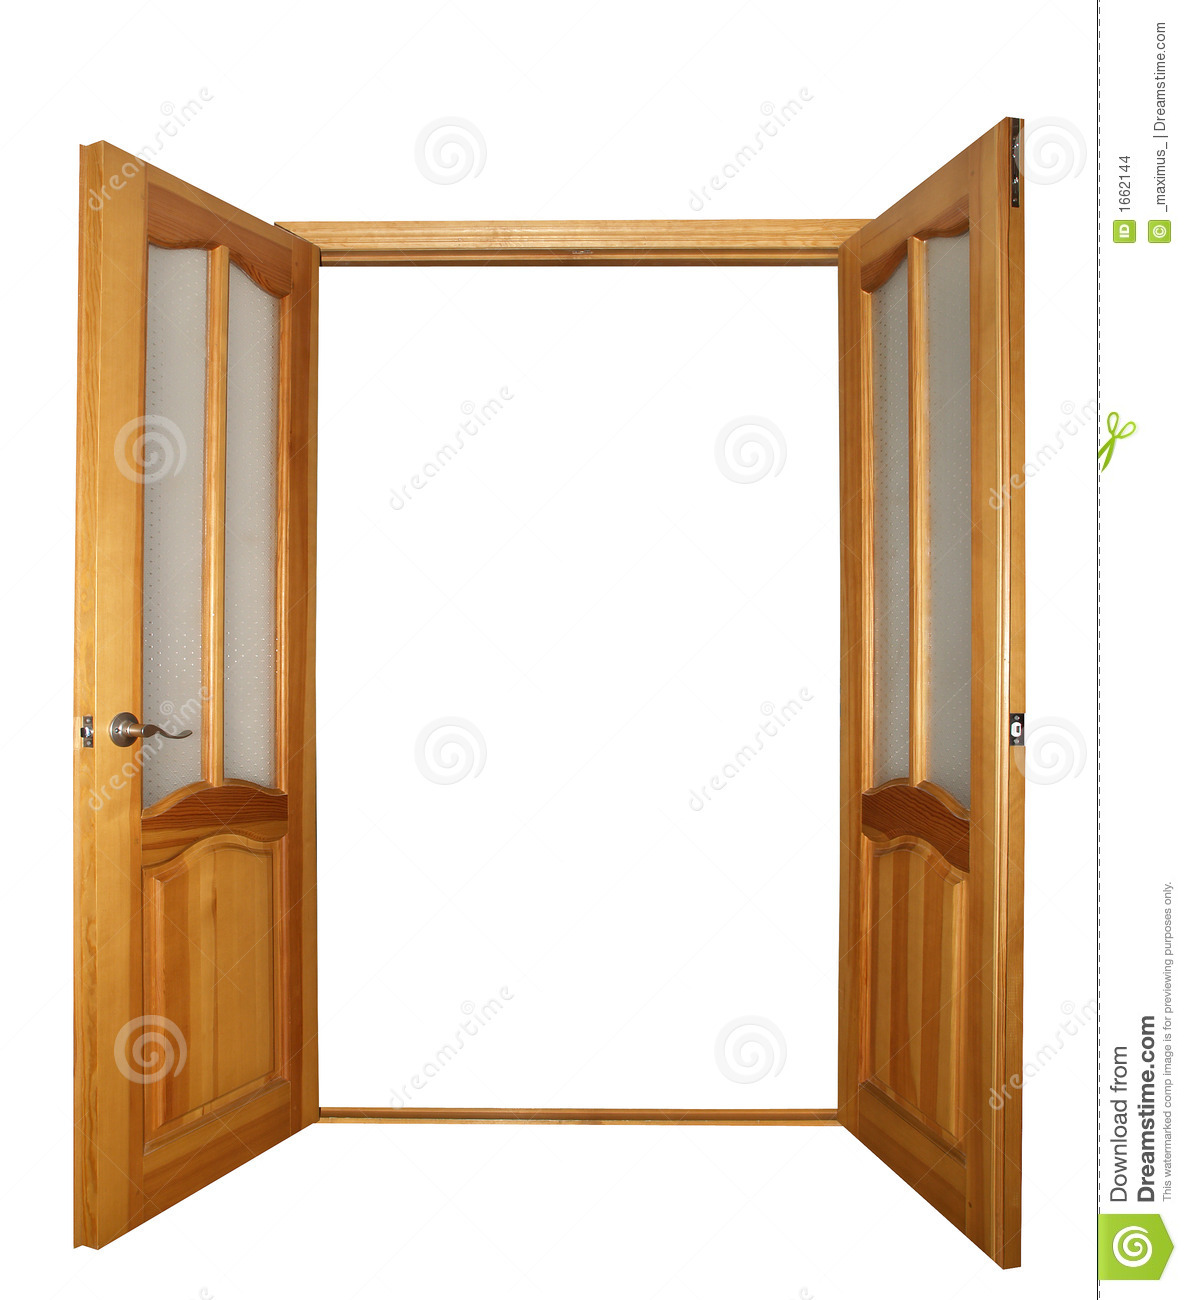 double door clipart clipart suggest